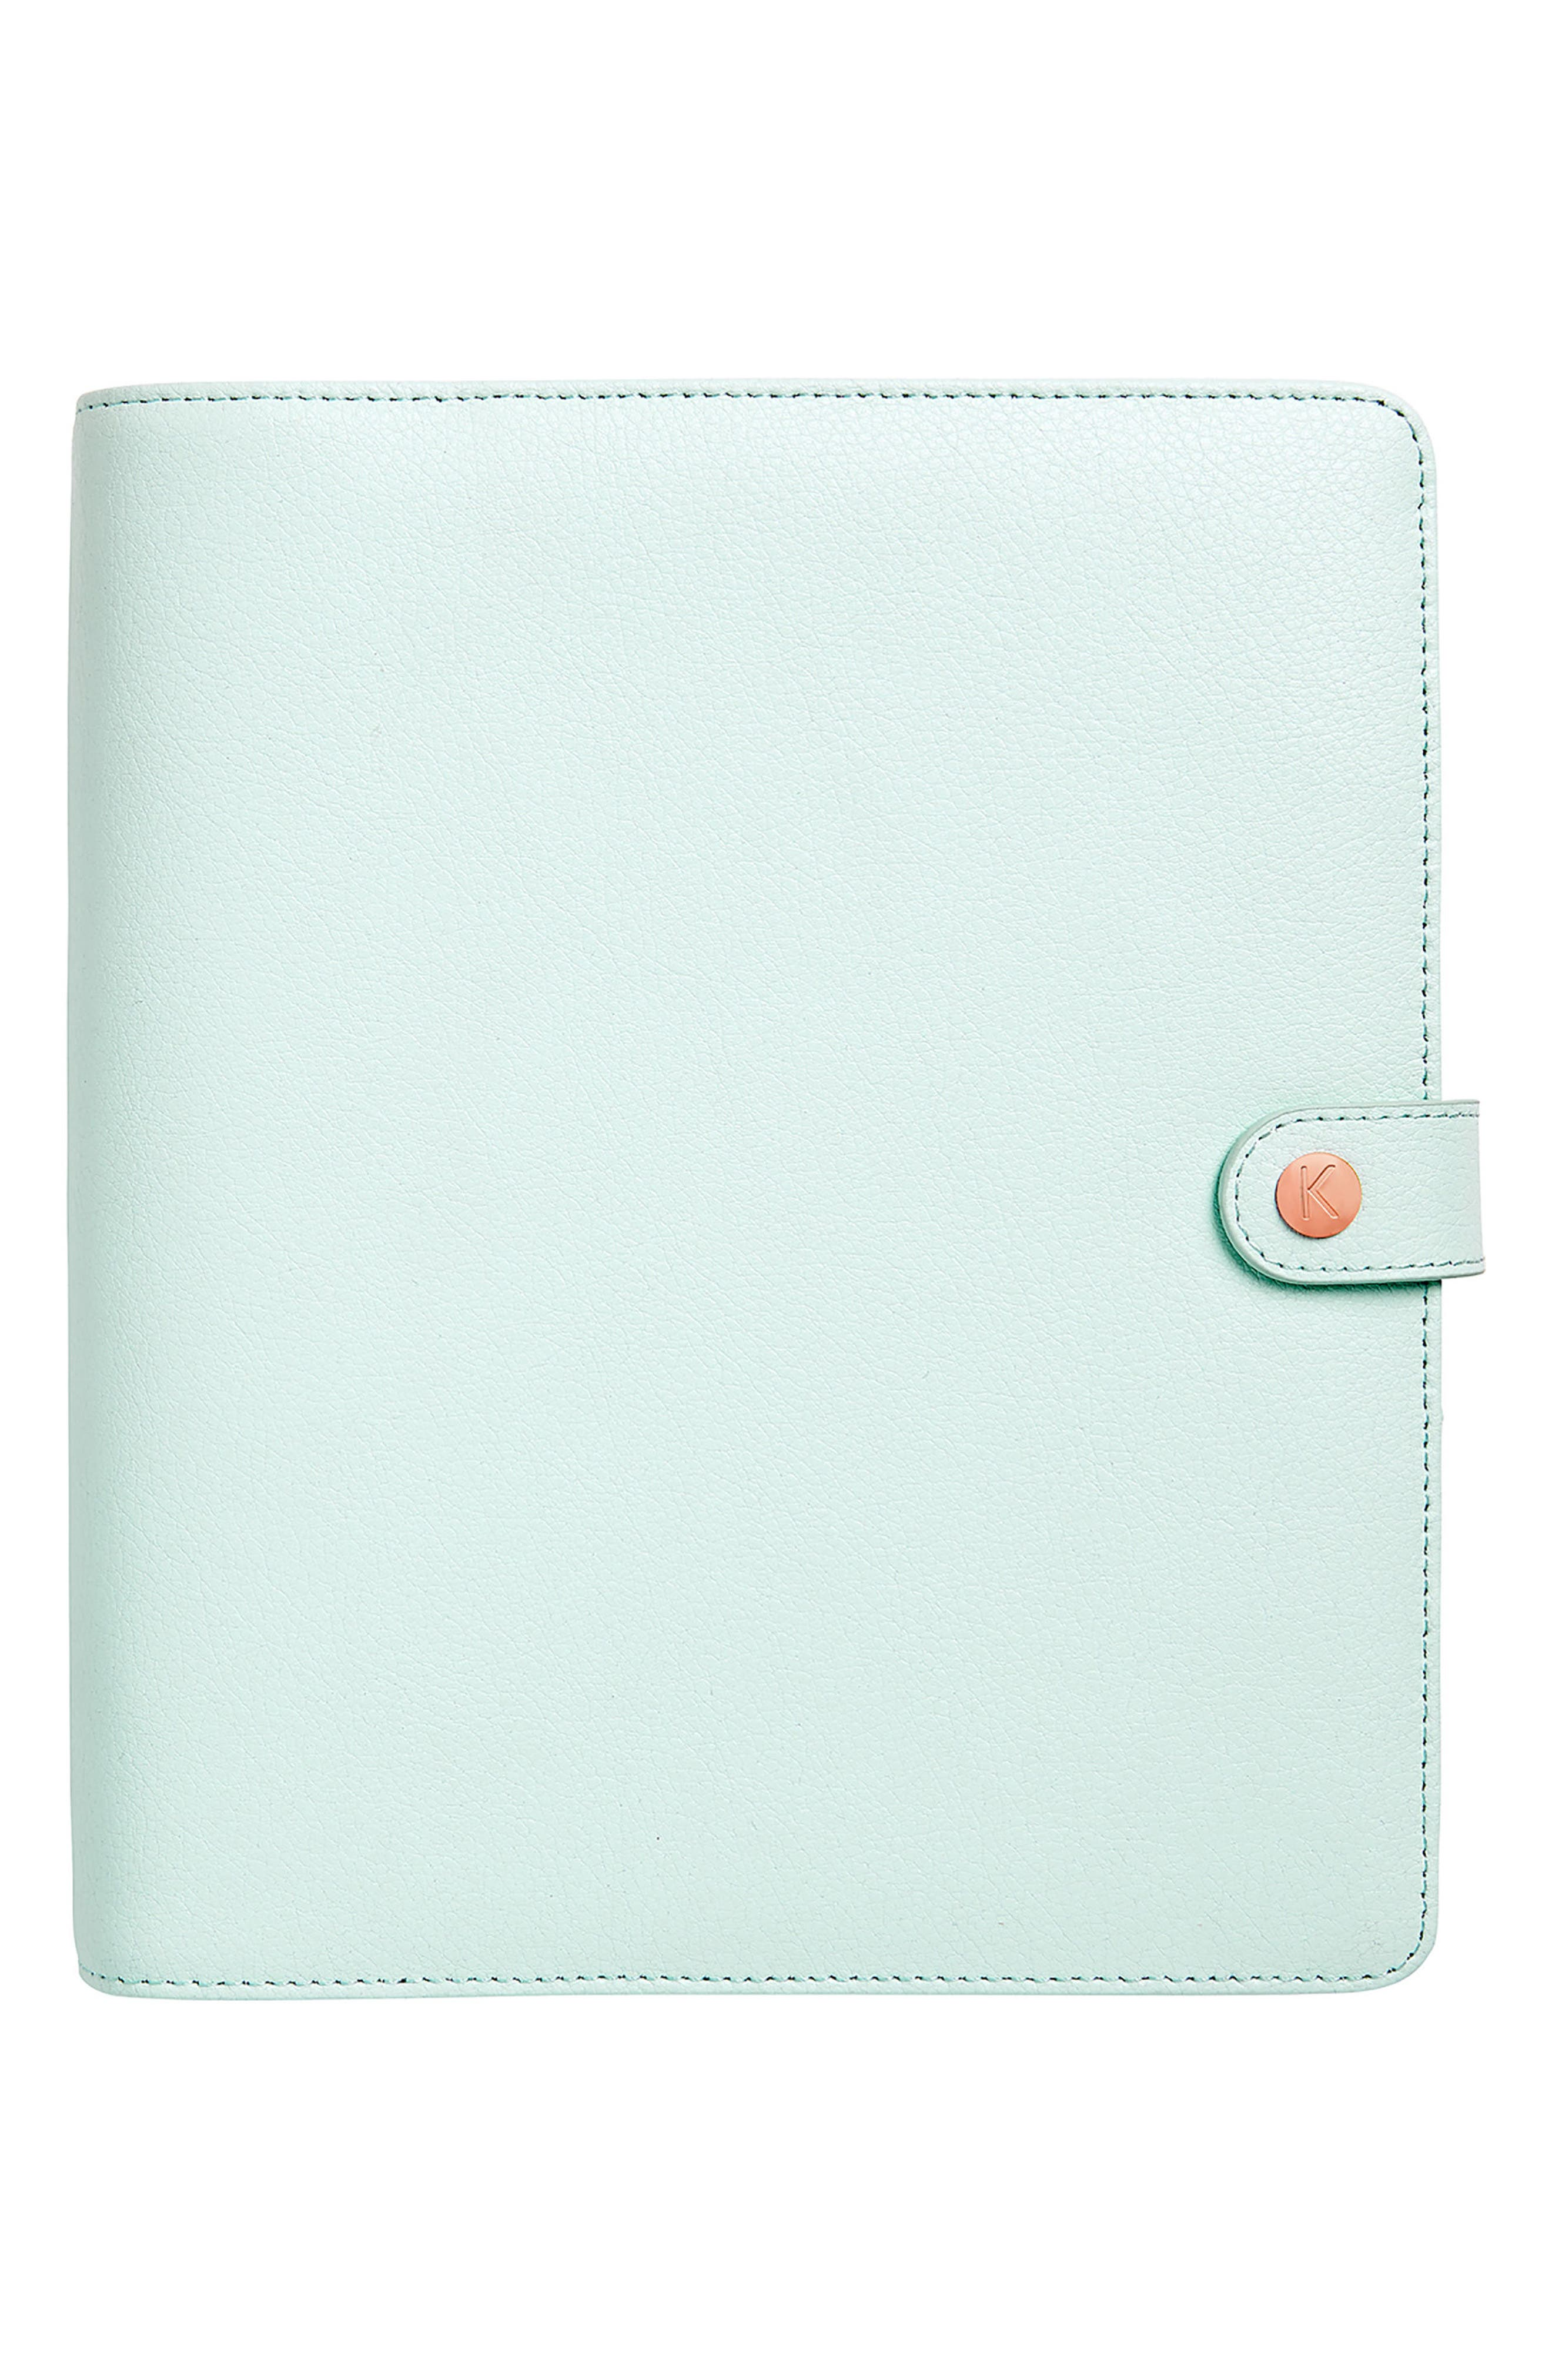 Large Leather 18-Month Perpetual Planner, Main, color, 304